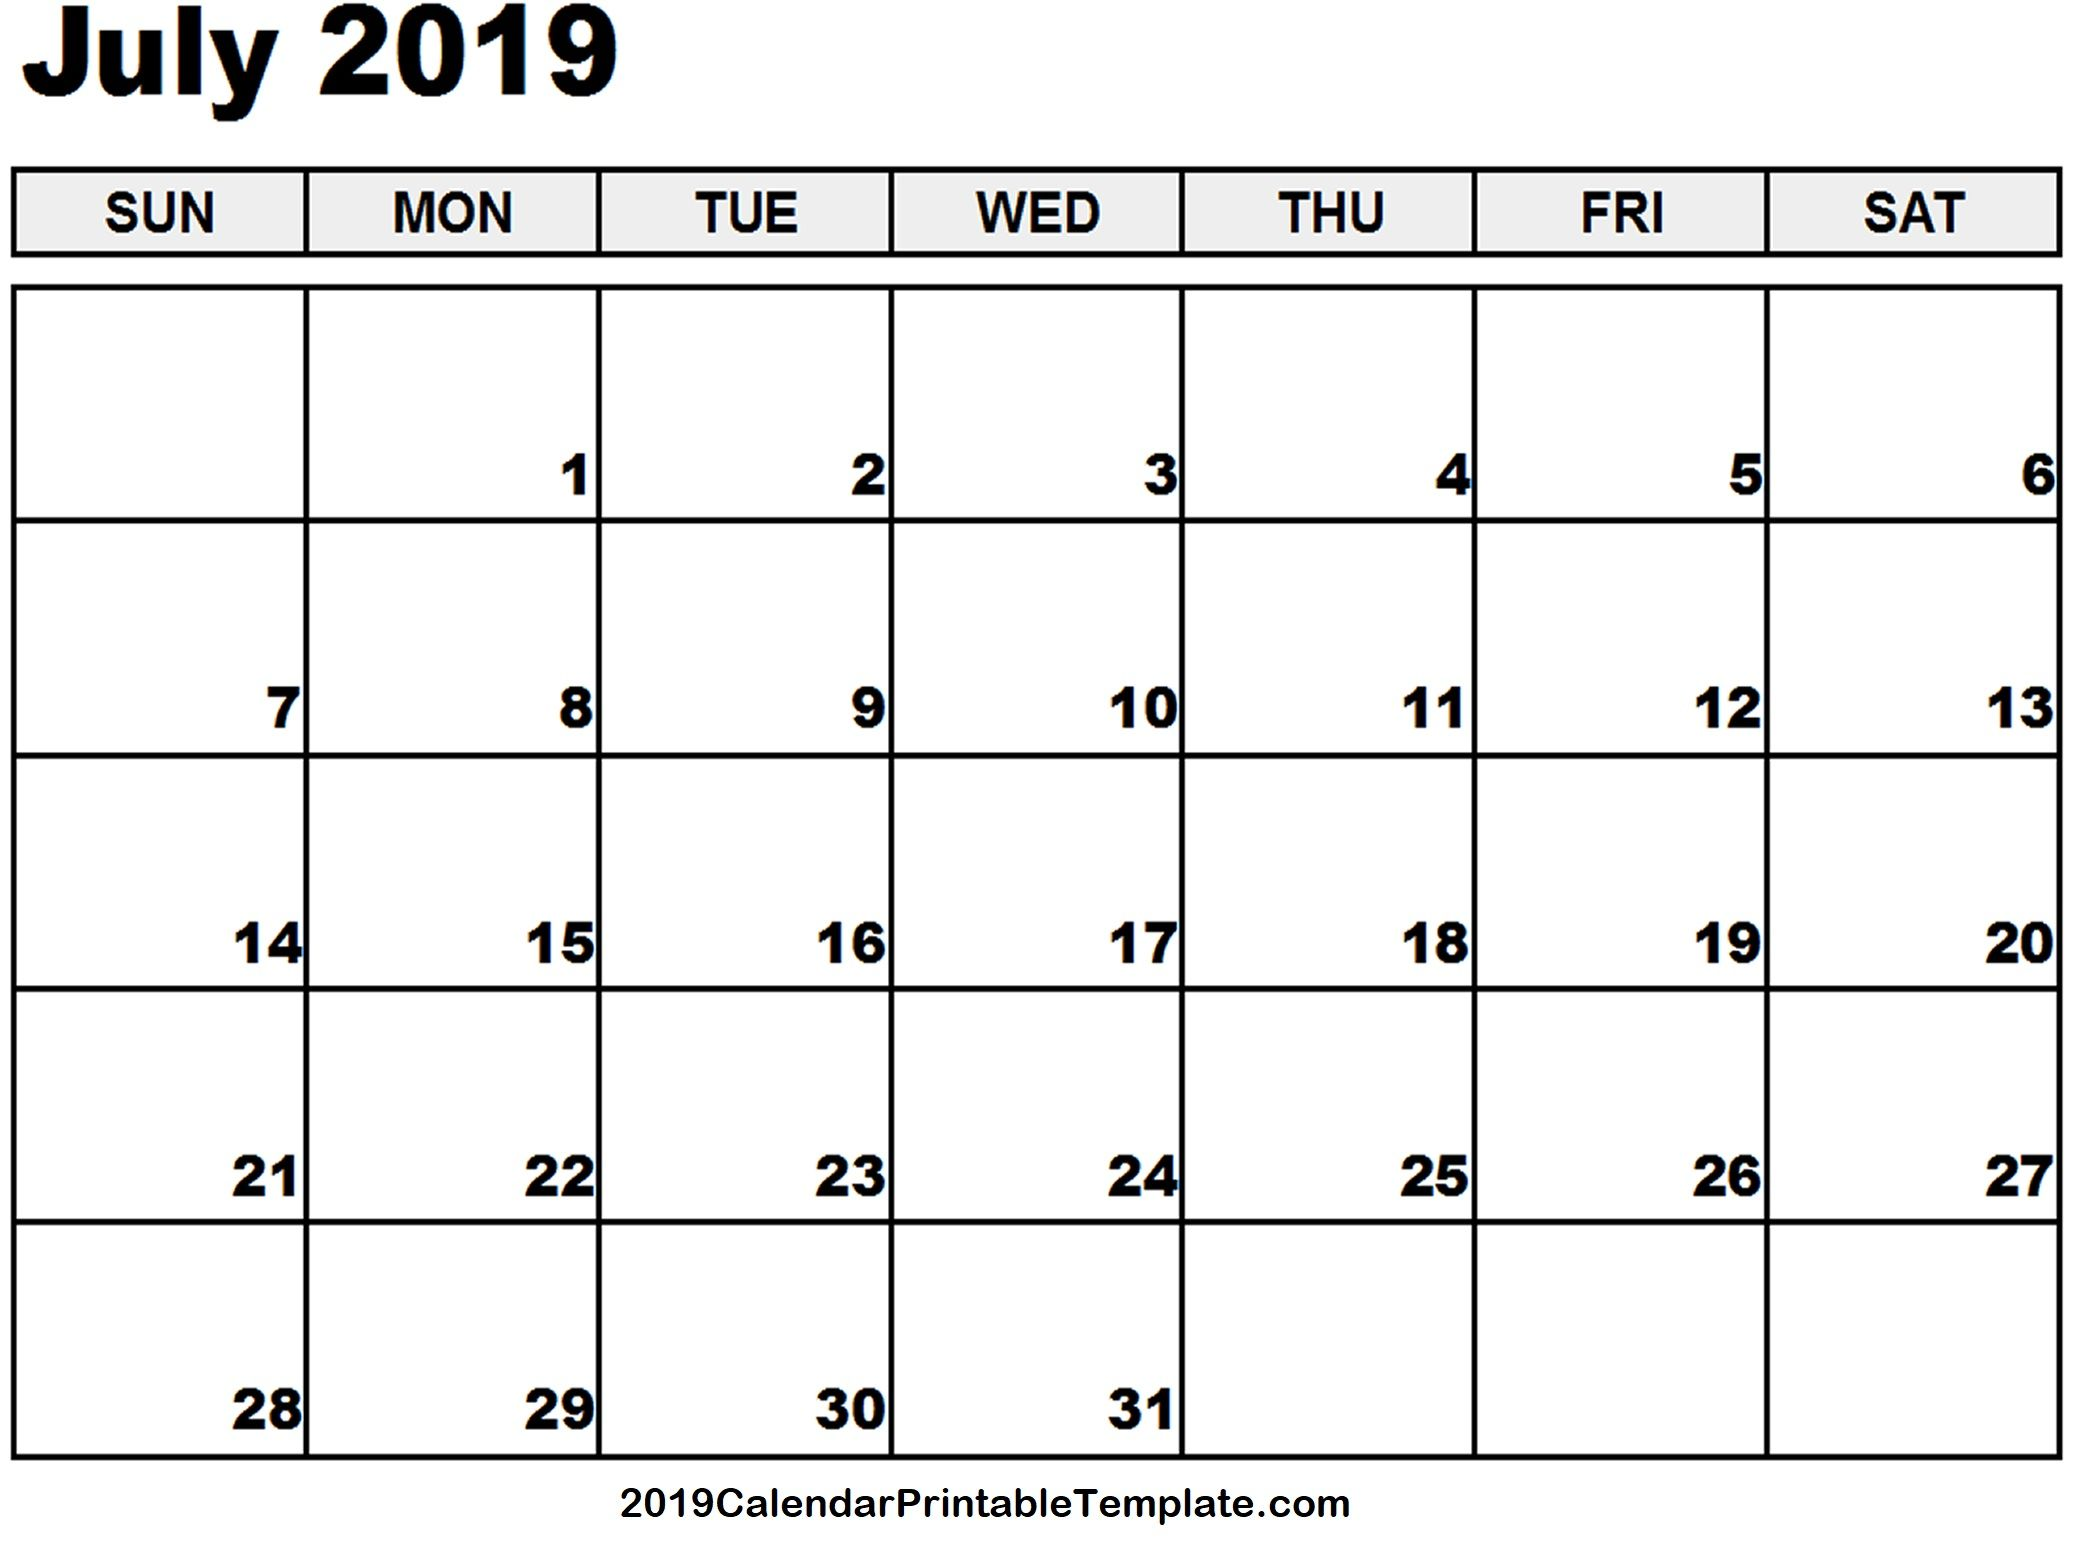 July 2019 Calendar Printable Template With Holidays Pdf Word Excel